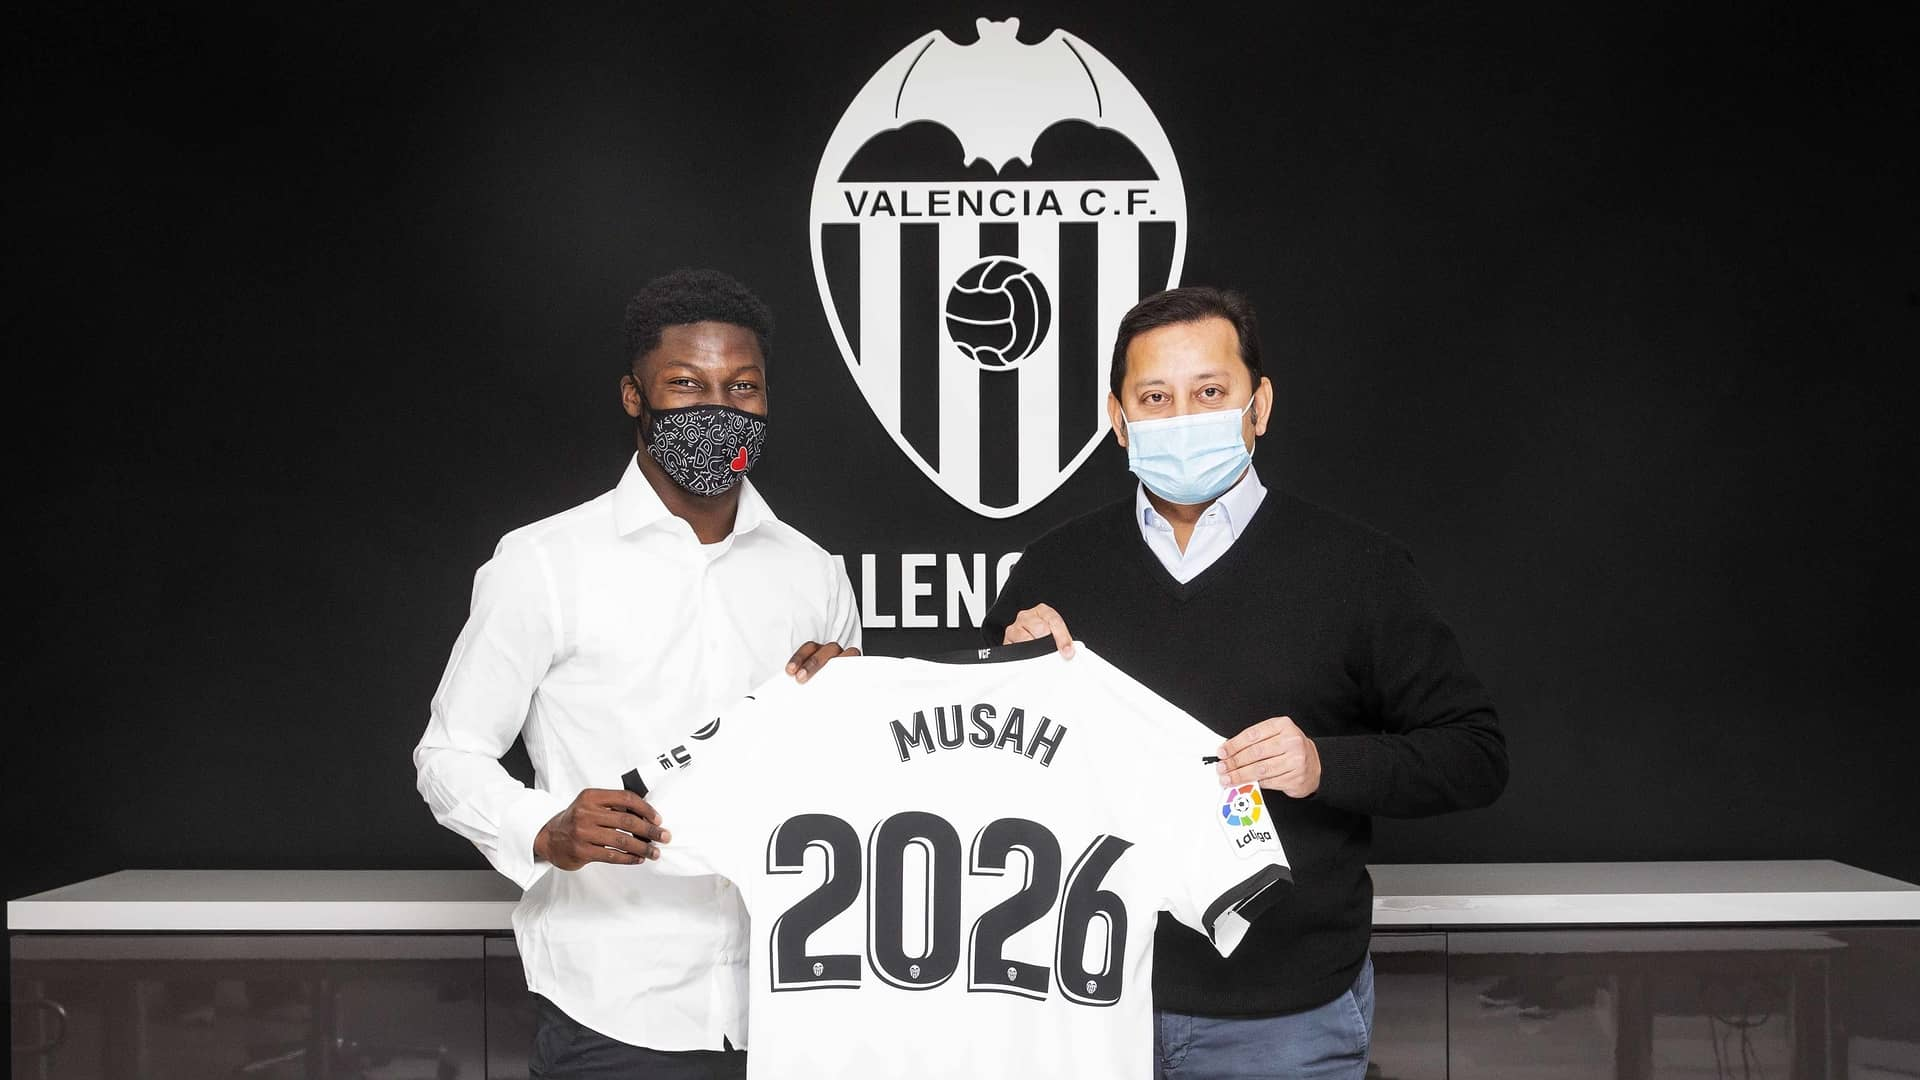 USMNT, Valencia youngster Musah signs new long-term contract